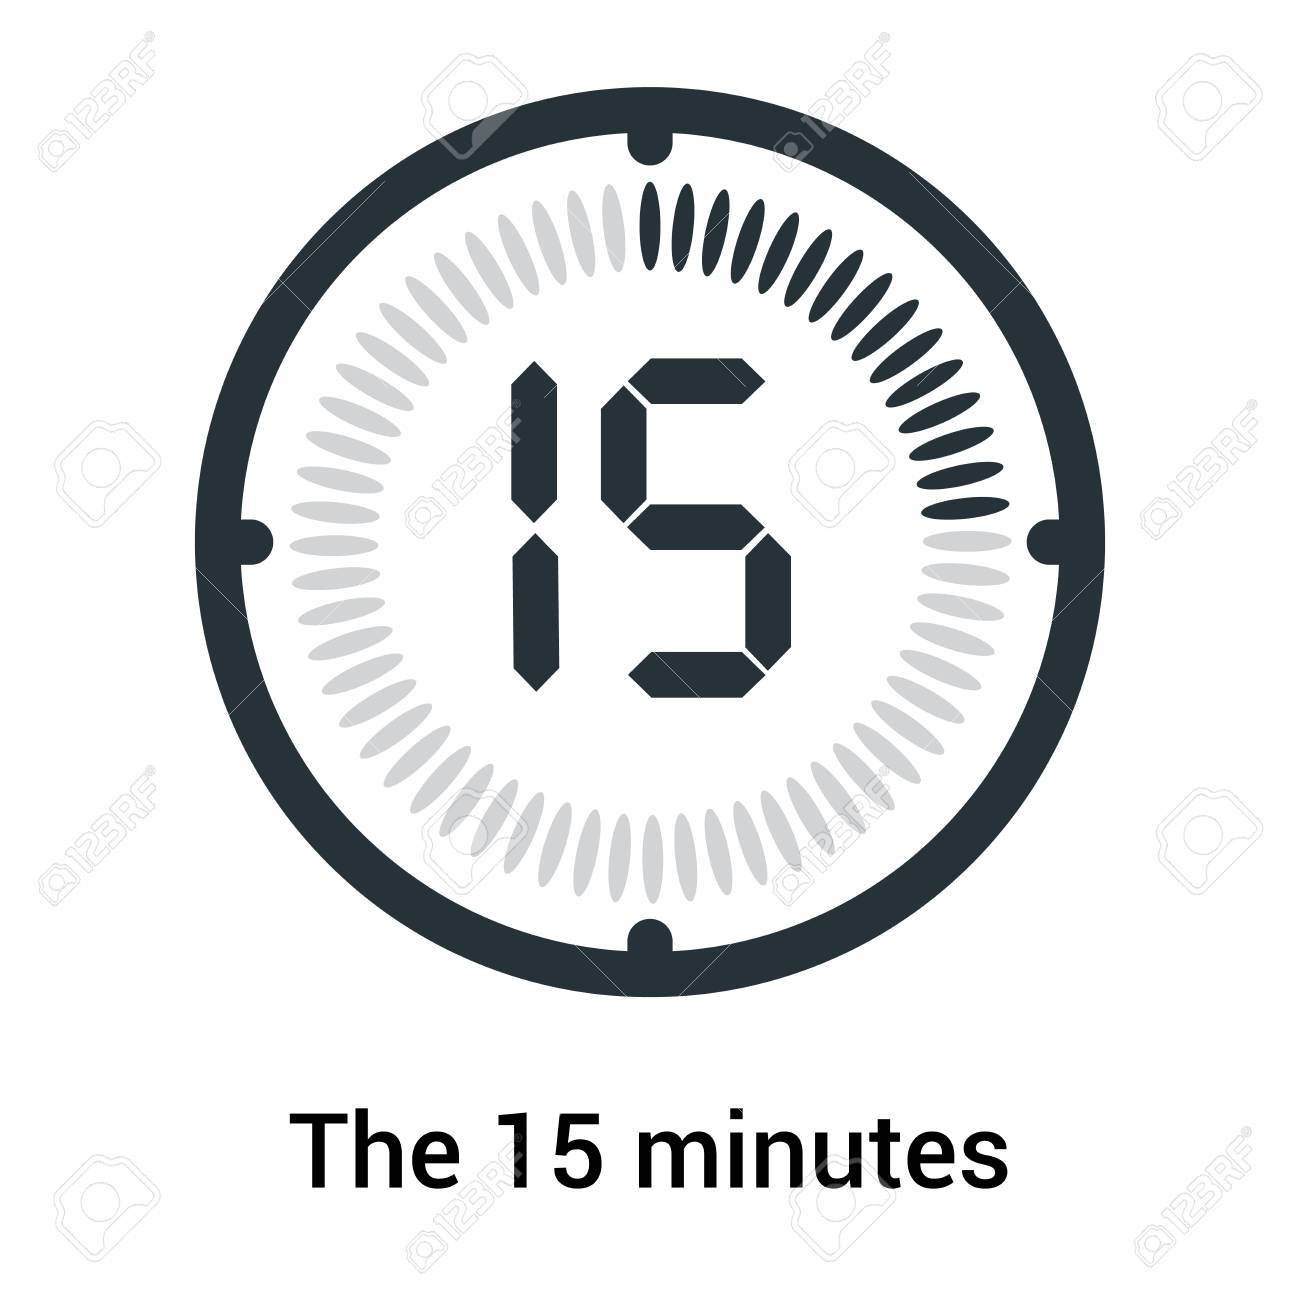 The 15 minutes icon isolated on white background, clock and watch,